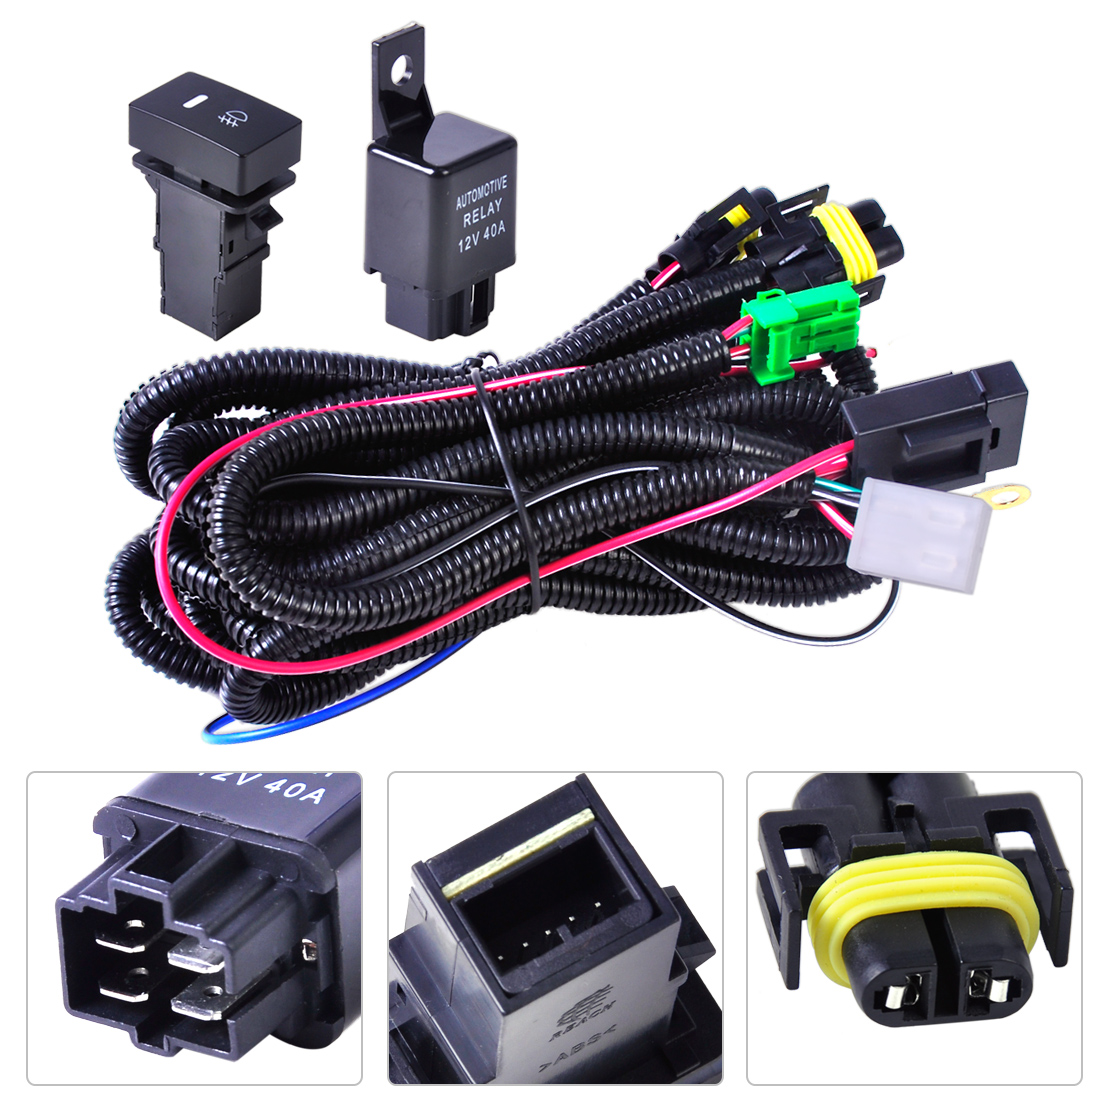 1 wiring harness sockets switch for h11 fog light lamp ford focus 2001 mustang fog light wiring harness at reclaimingppi.co